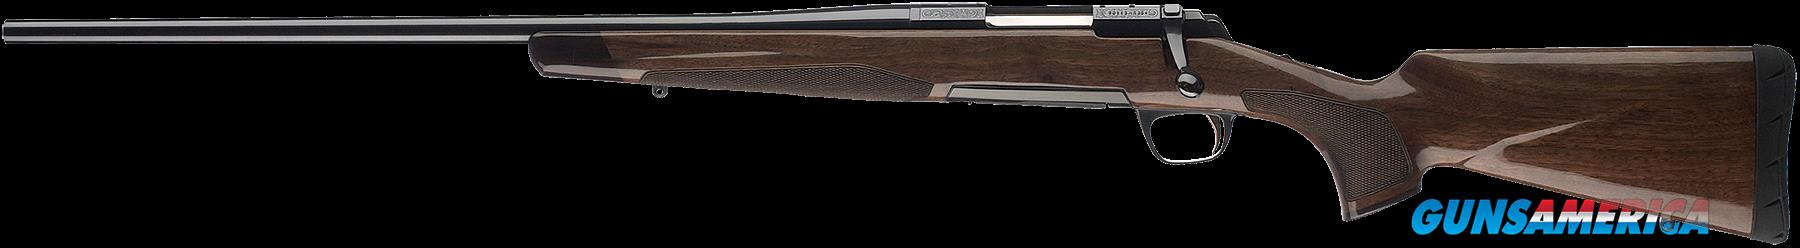 "Browning 035253218 X-Bolt Medallion Left-Hand 308 Win 22"" 4+1 Walnut Stock Blued  Guns > Rifles > Browning Rifles > Bolt Action"